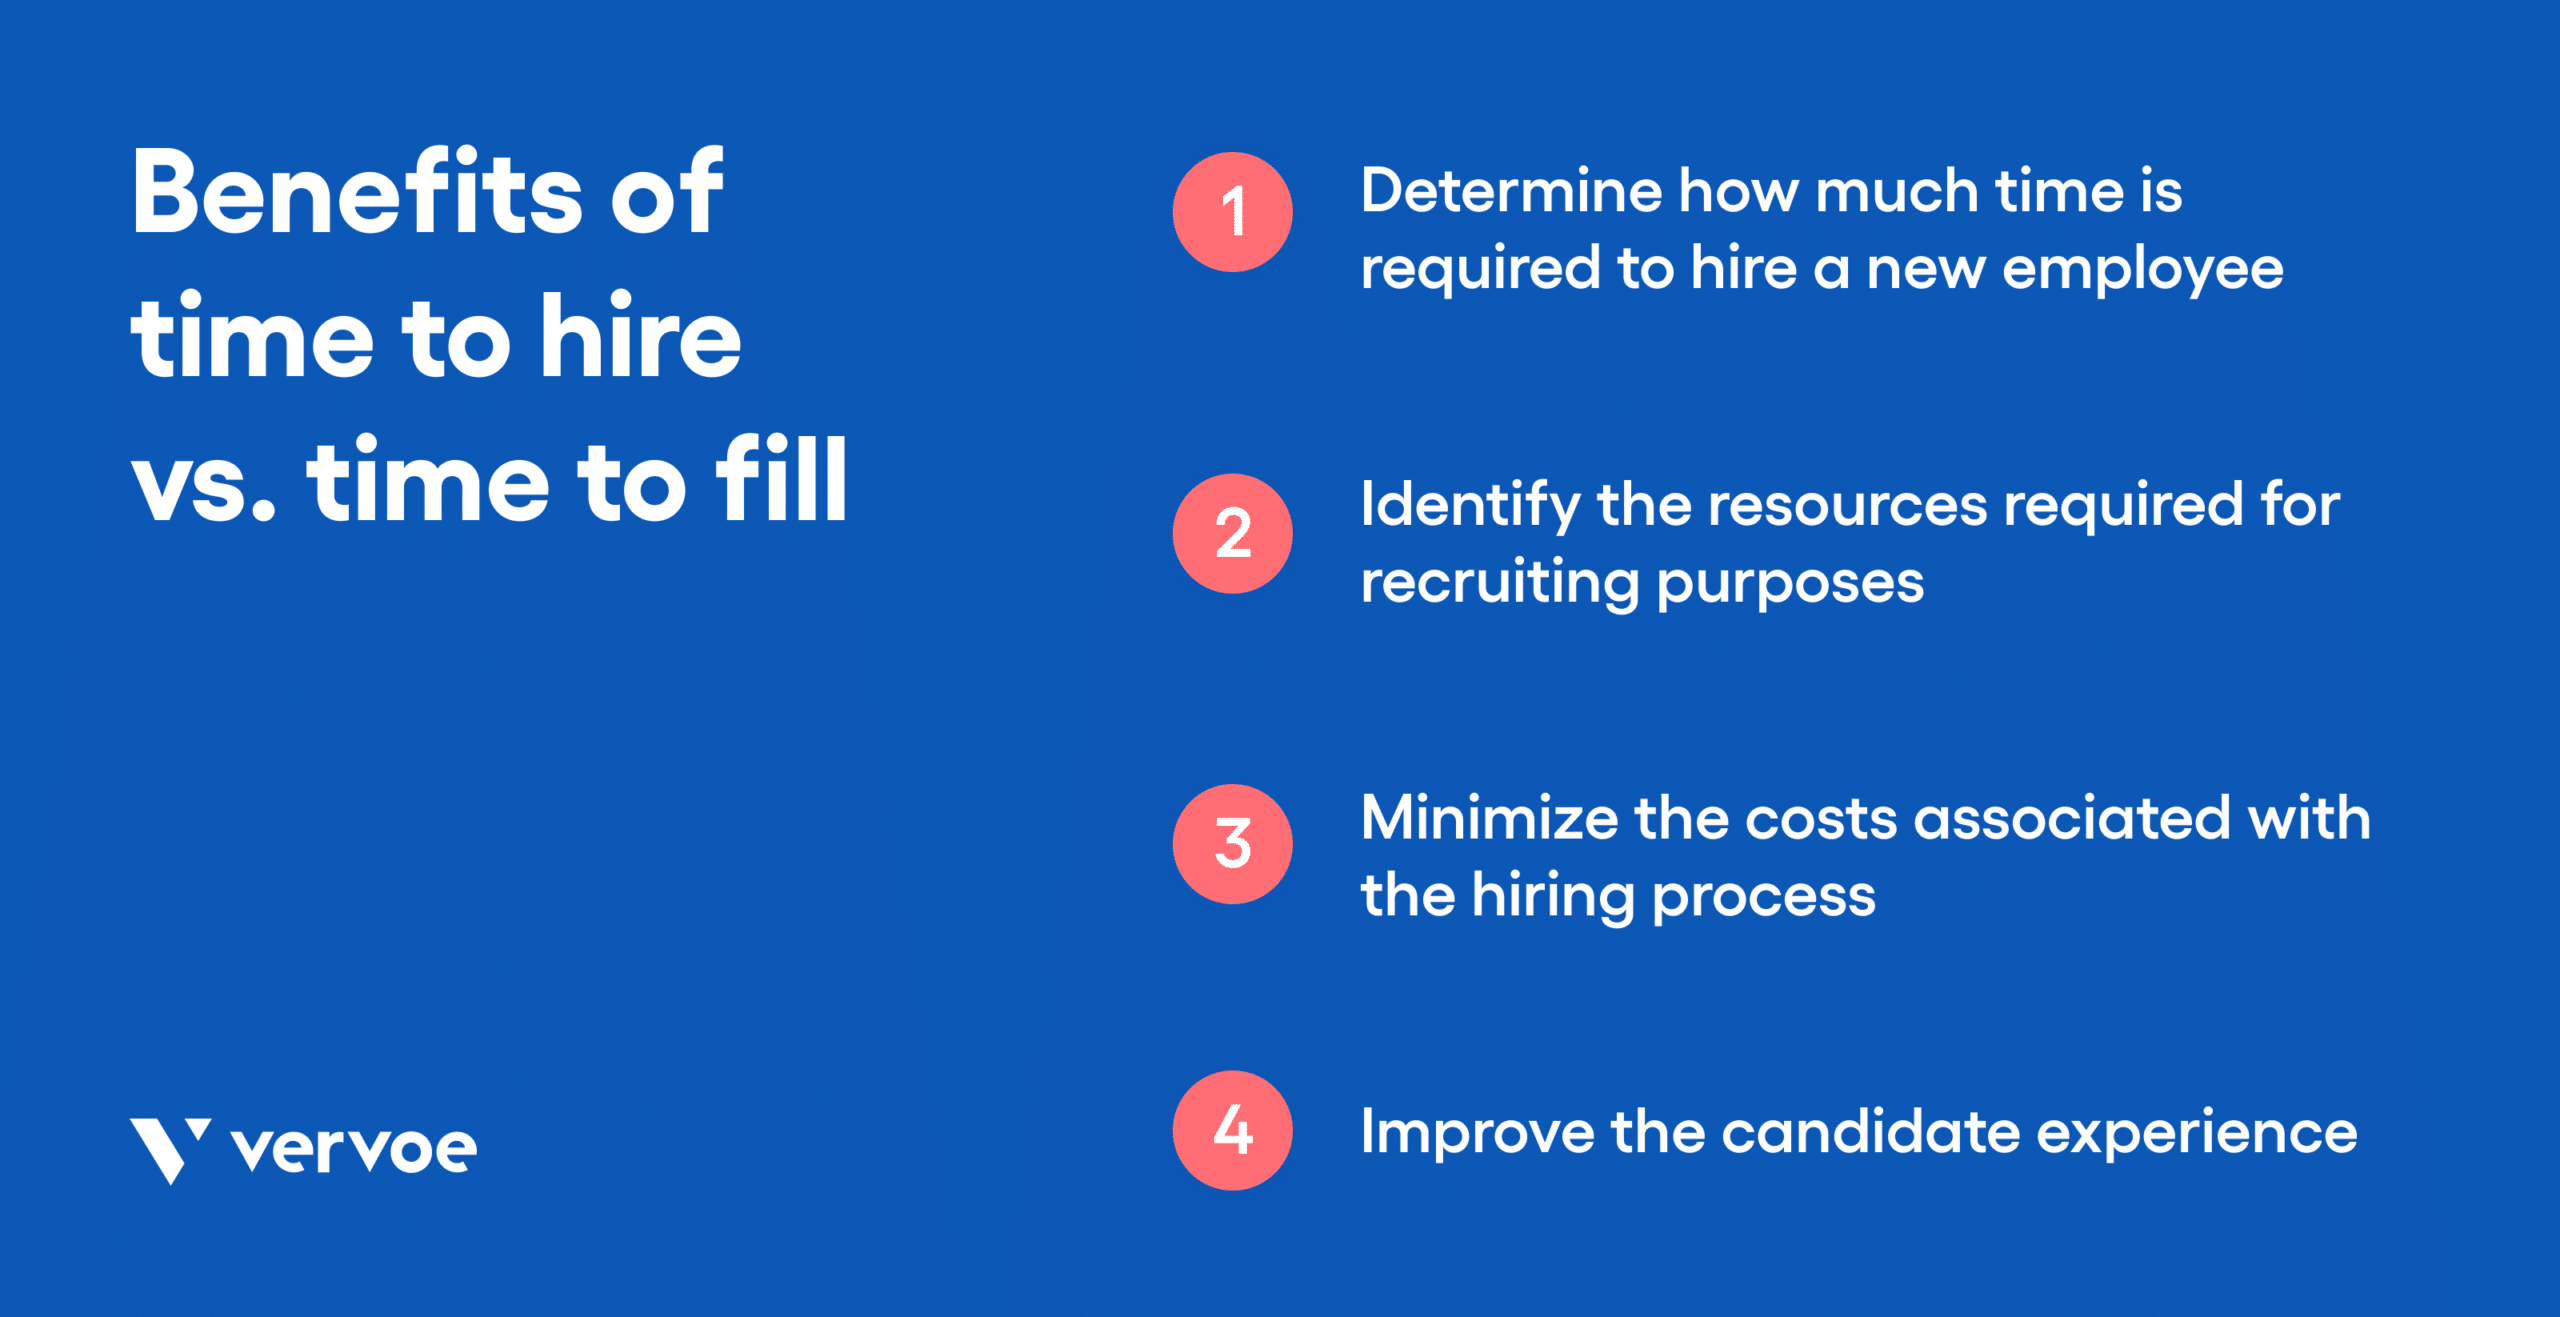 Graphic showing the benefits of time to hire vs time to fill